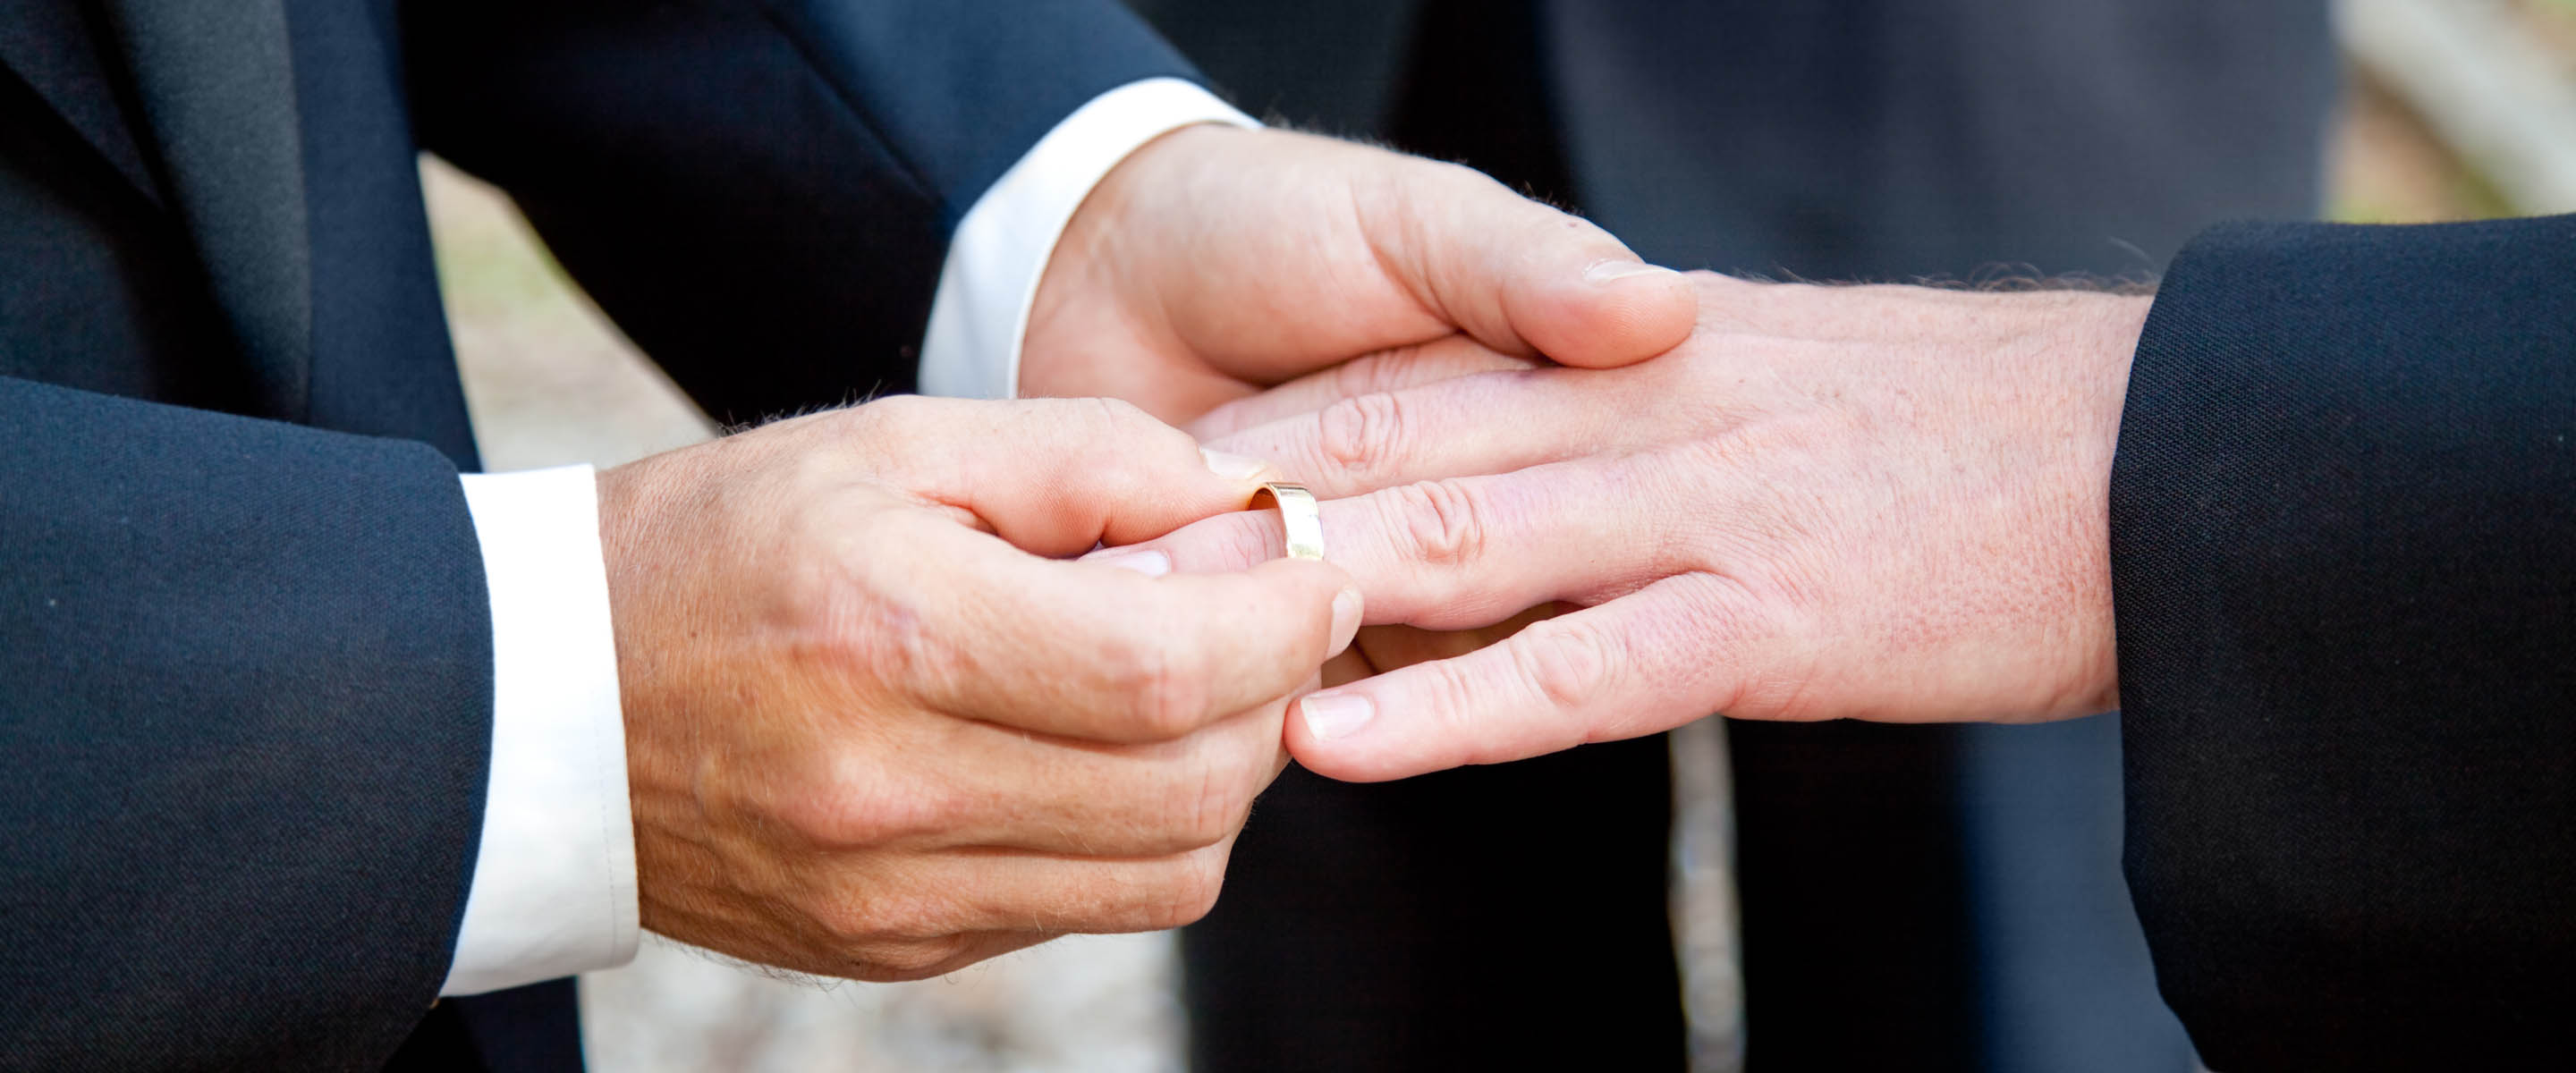 Male couple exchange wedding rings